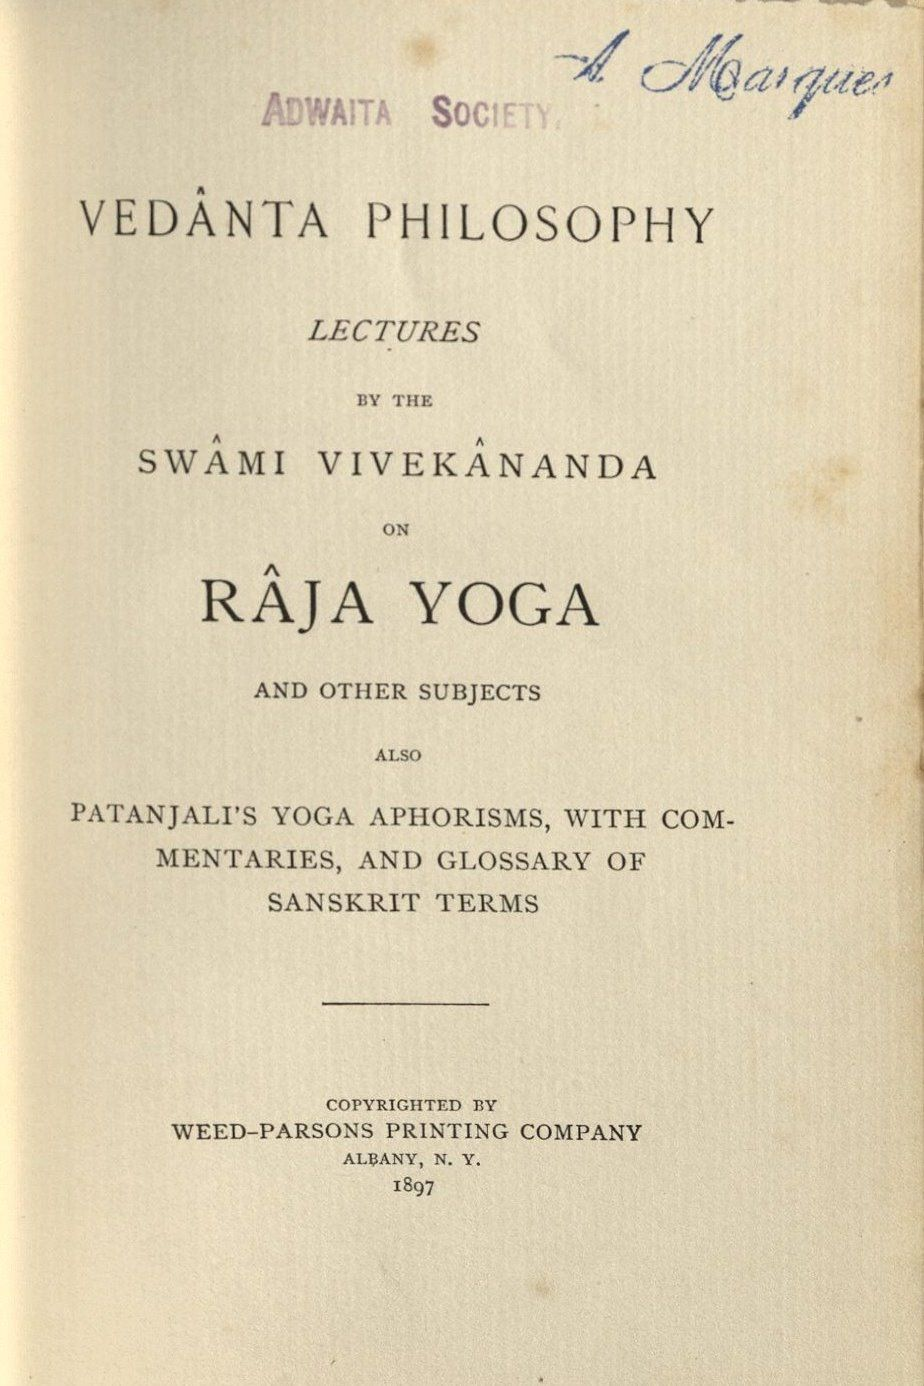 Vedanta Philosophy Lectures By The Swami Vivekananda On Raja Yoga And Other Subjects Also Patanjali S Yoga Aphoorisms With Commentaries And Glossary Of Sanskrit Terms Omeka Sdsu Edu